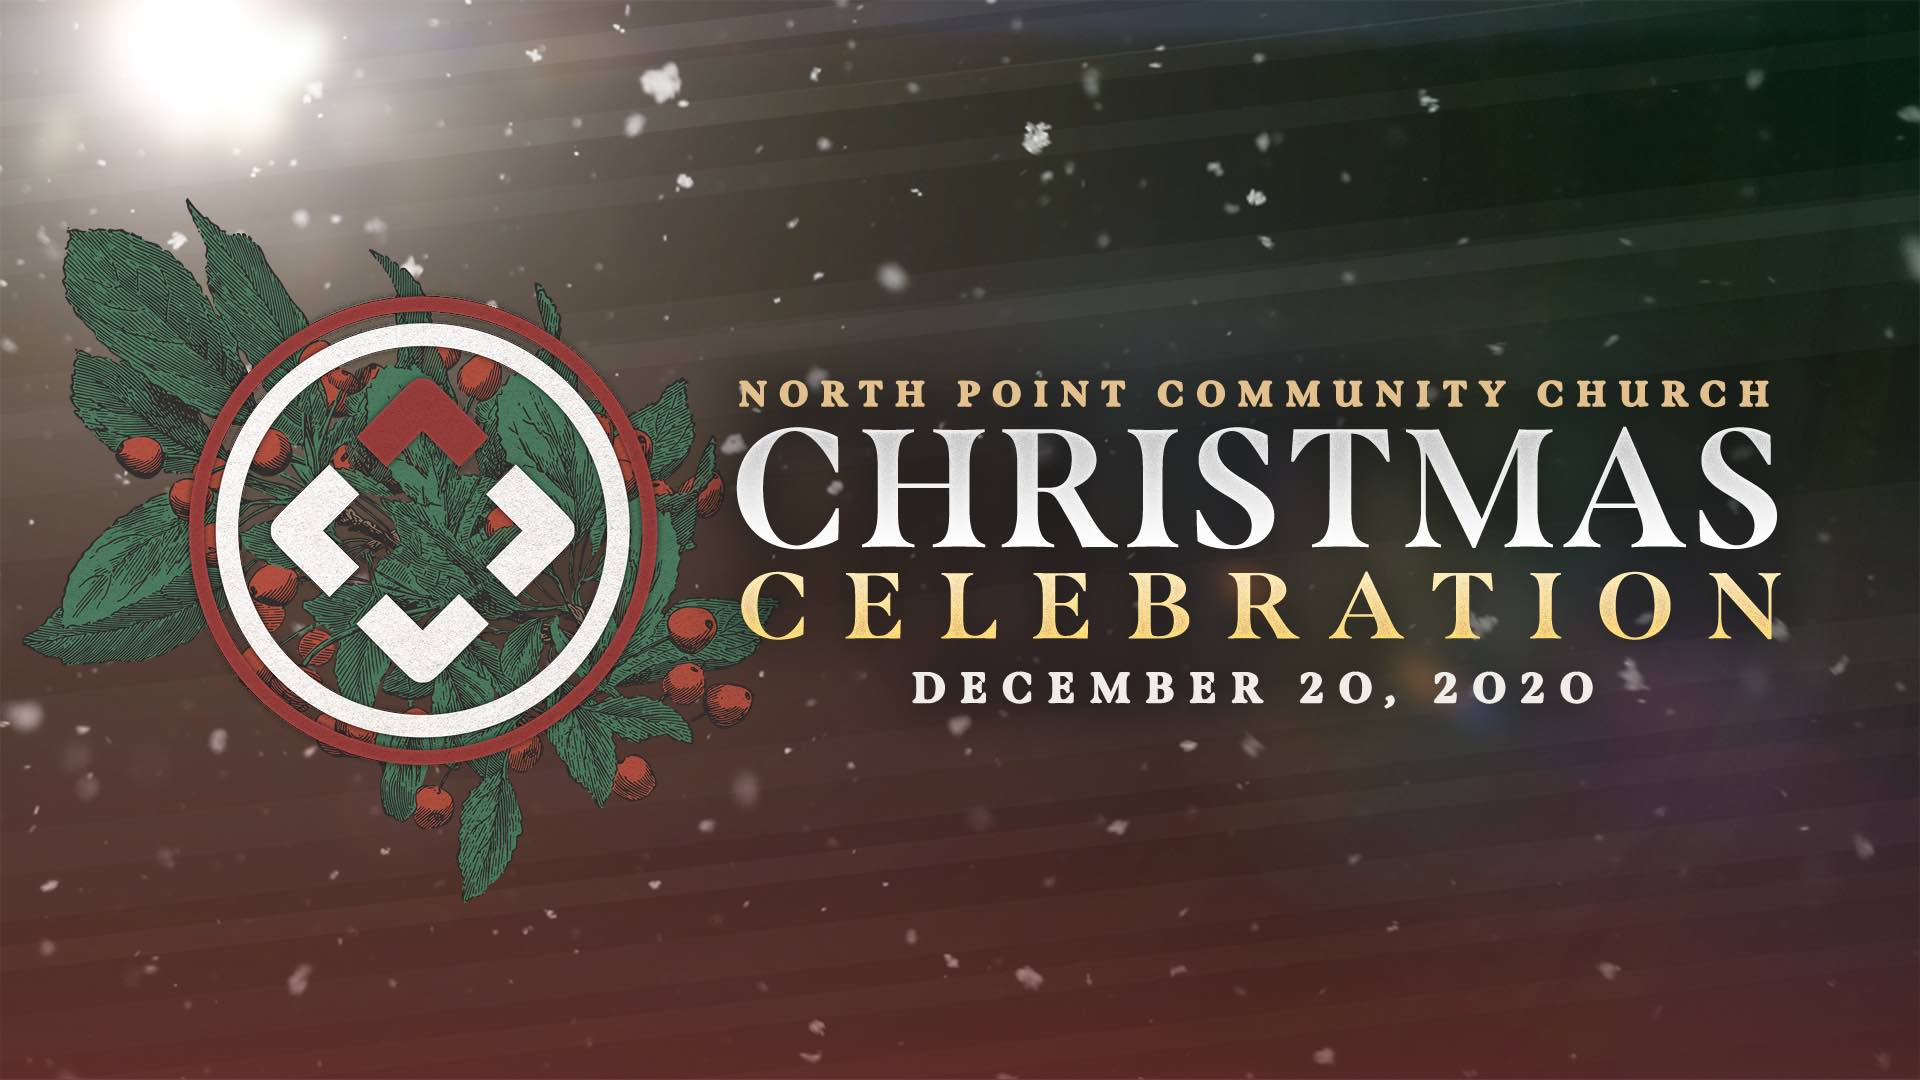 North Point Community Church Christmas Celebration